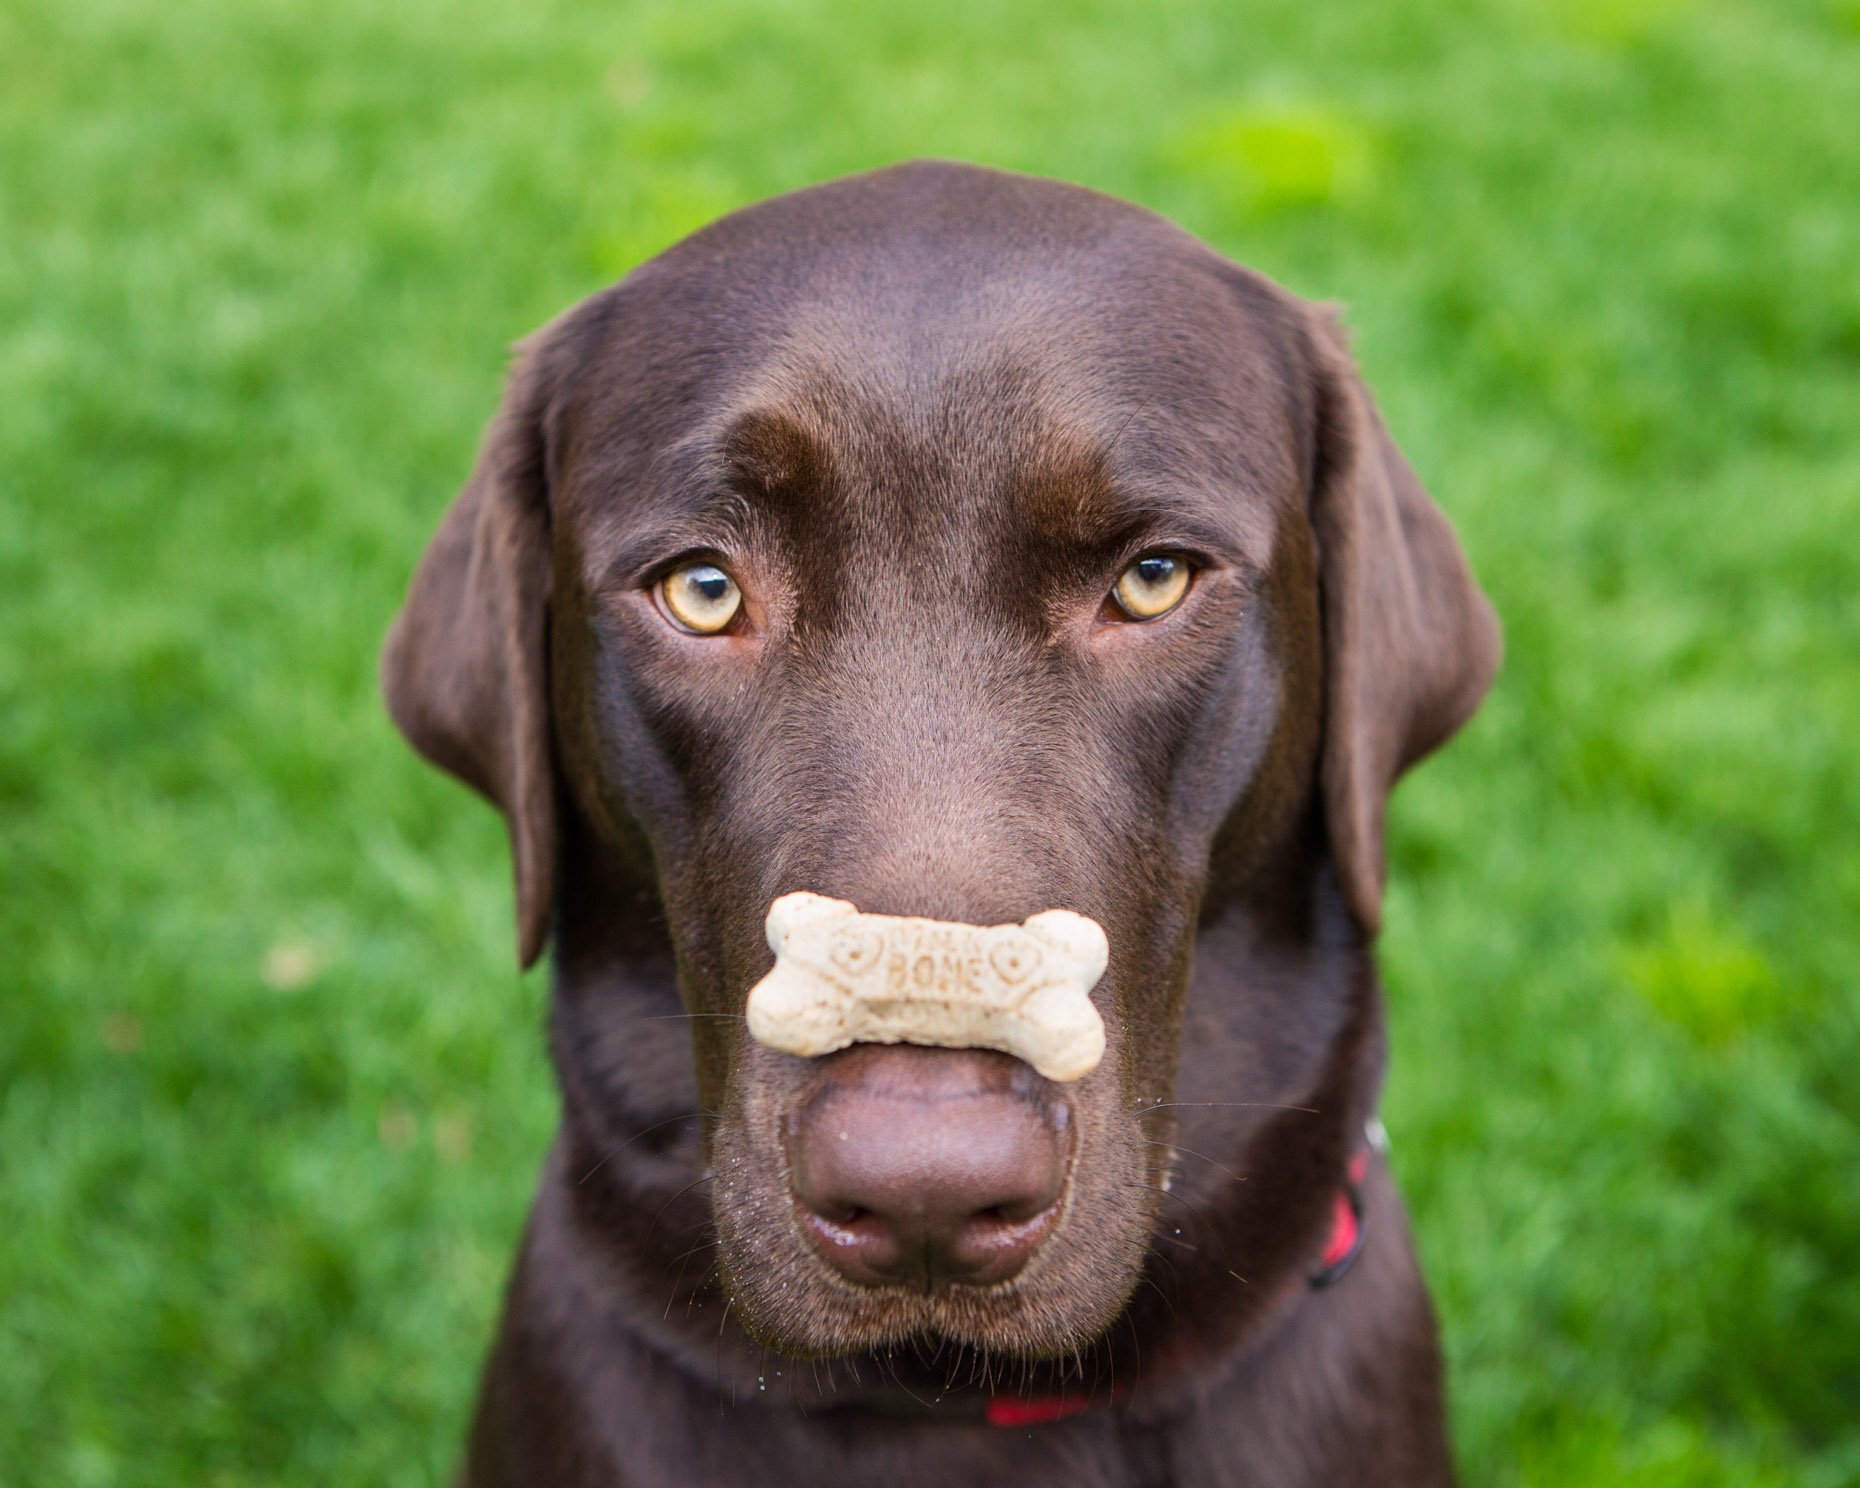 brown-labrador-dog-with-treat-on-nose